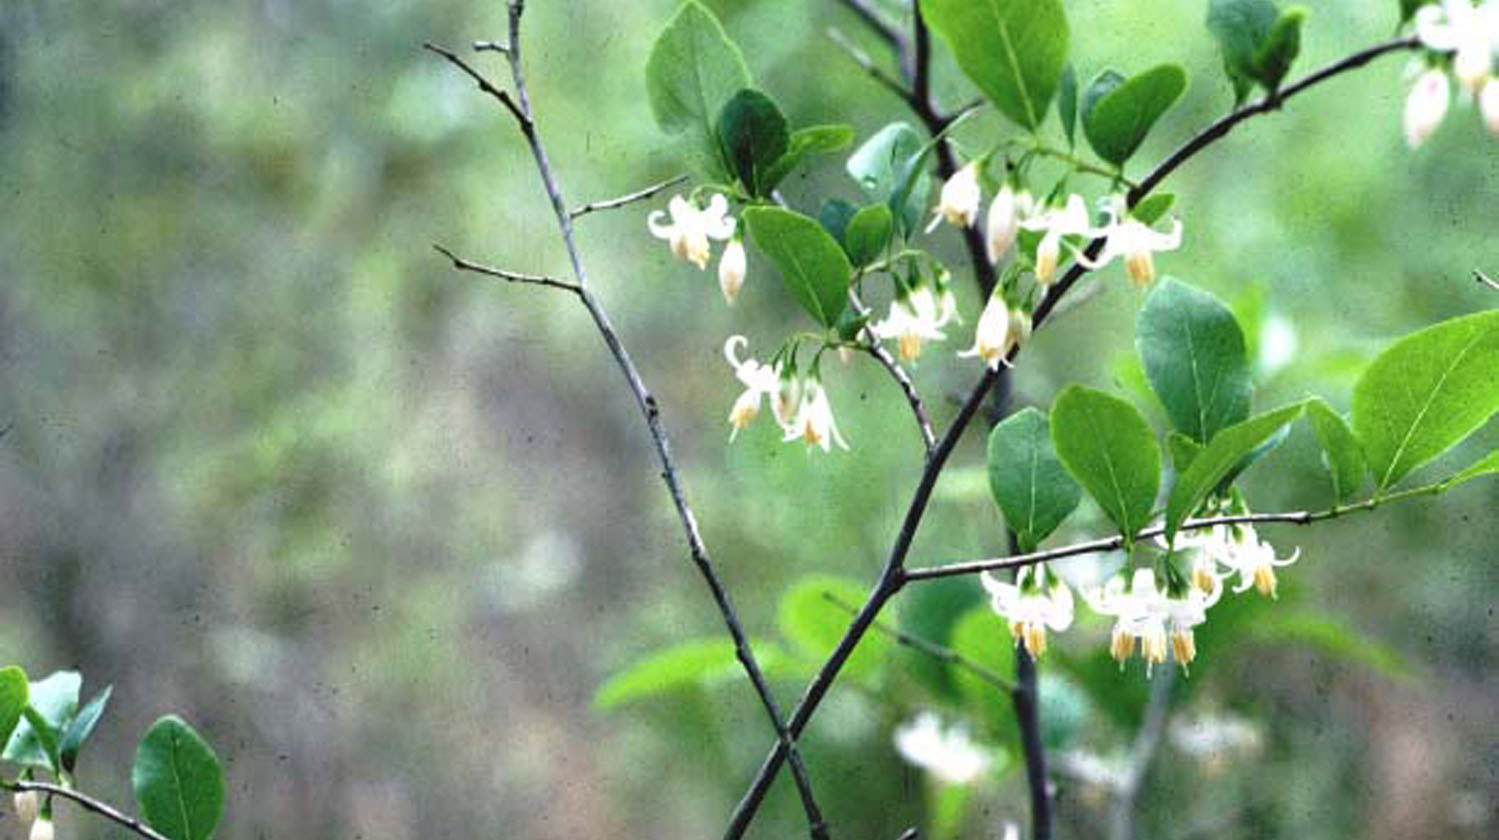 Native shrubs for mississippi landscapes mississippi state small white flowers are numerous on the plant and bloom from april through may it typically has an upright oval form mightylinksfo